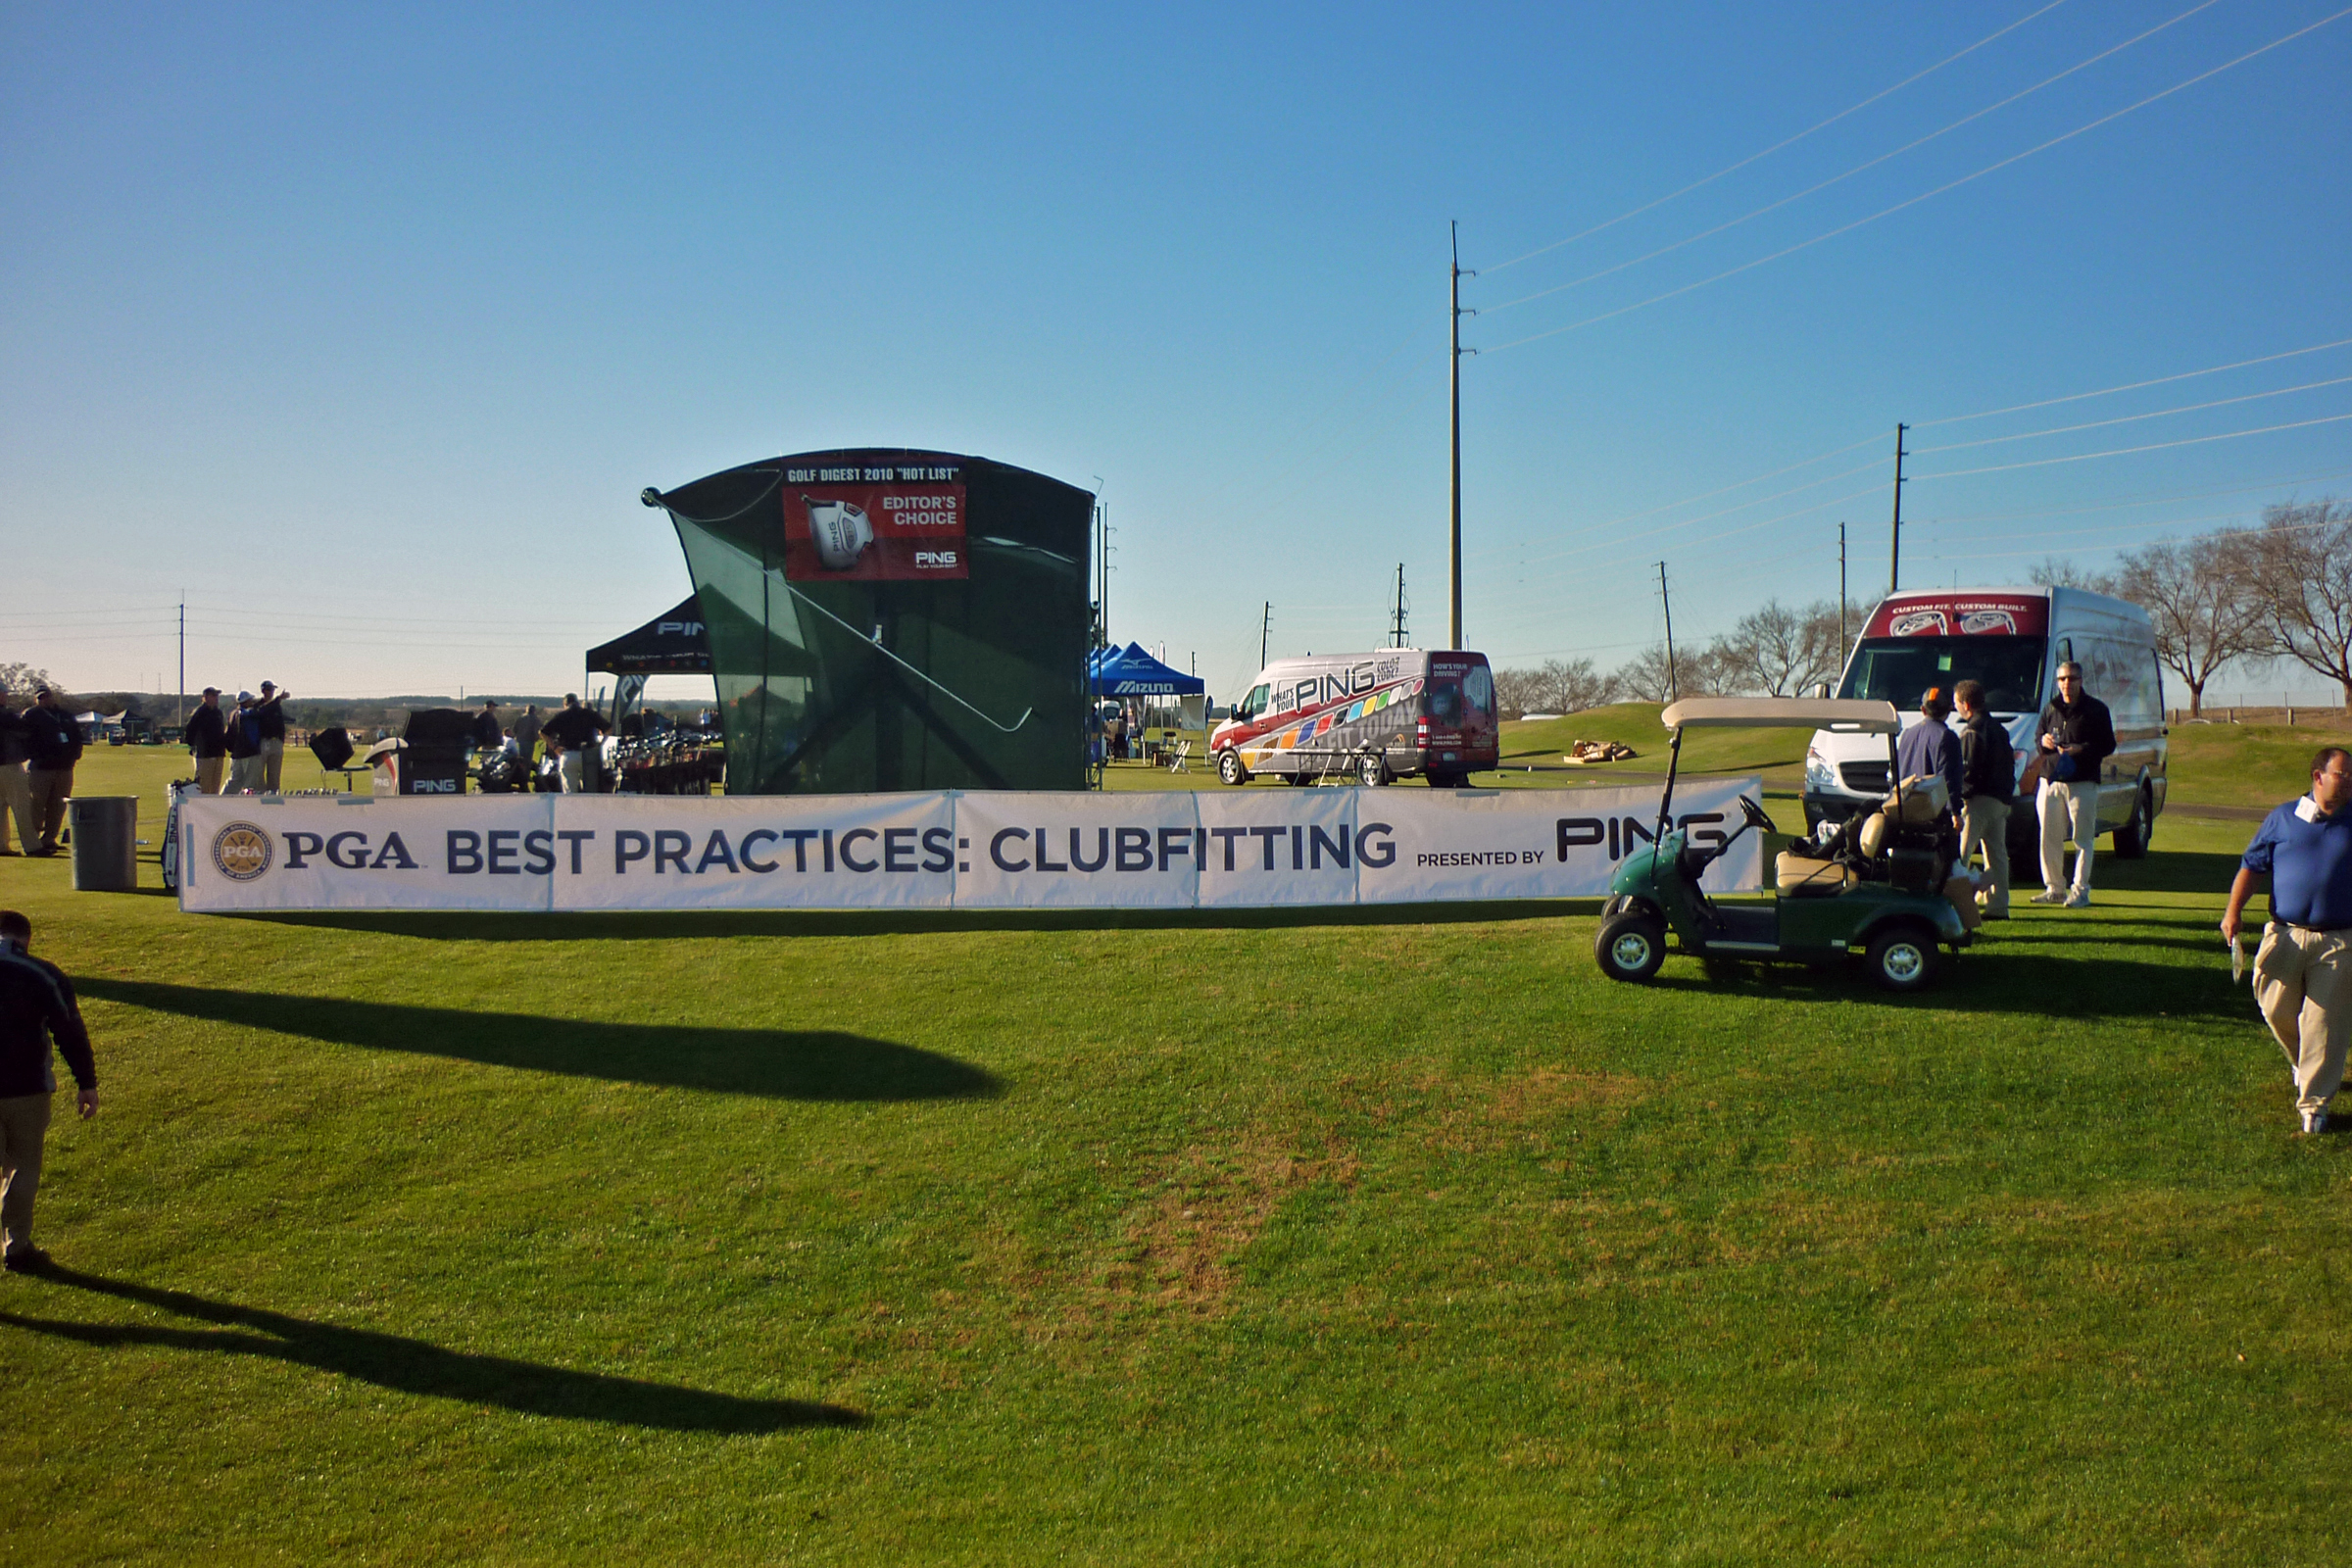 Demo Day at the PGA Merchandise Show, 2010.